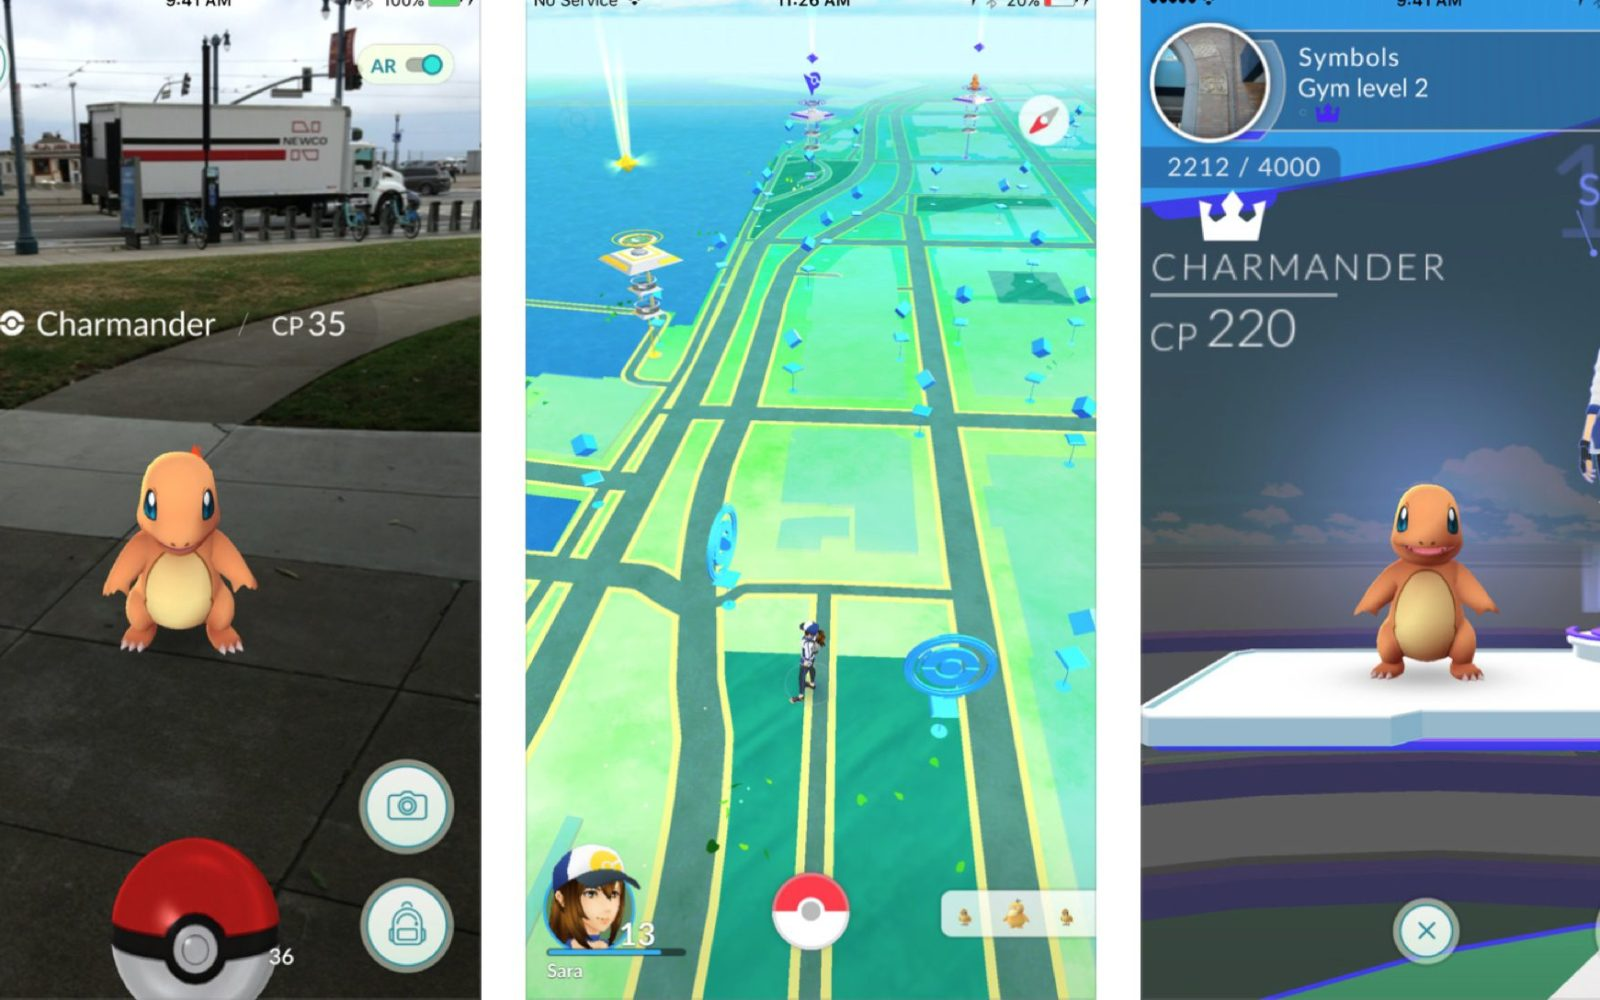 Pokémon GO launches in Japan with sponsored gyms at 3000 McDonald's outlets